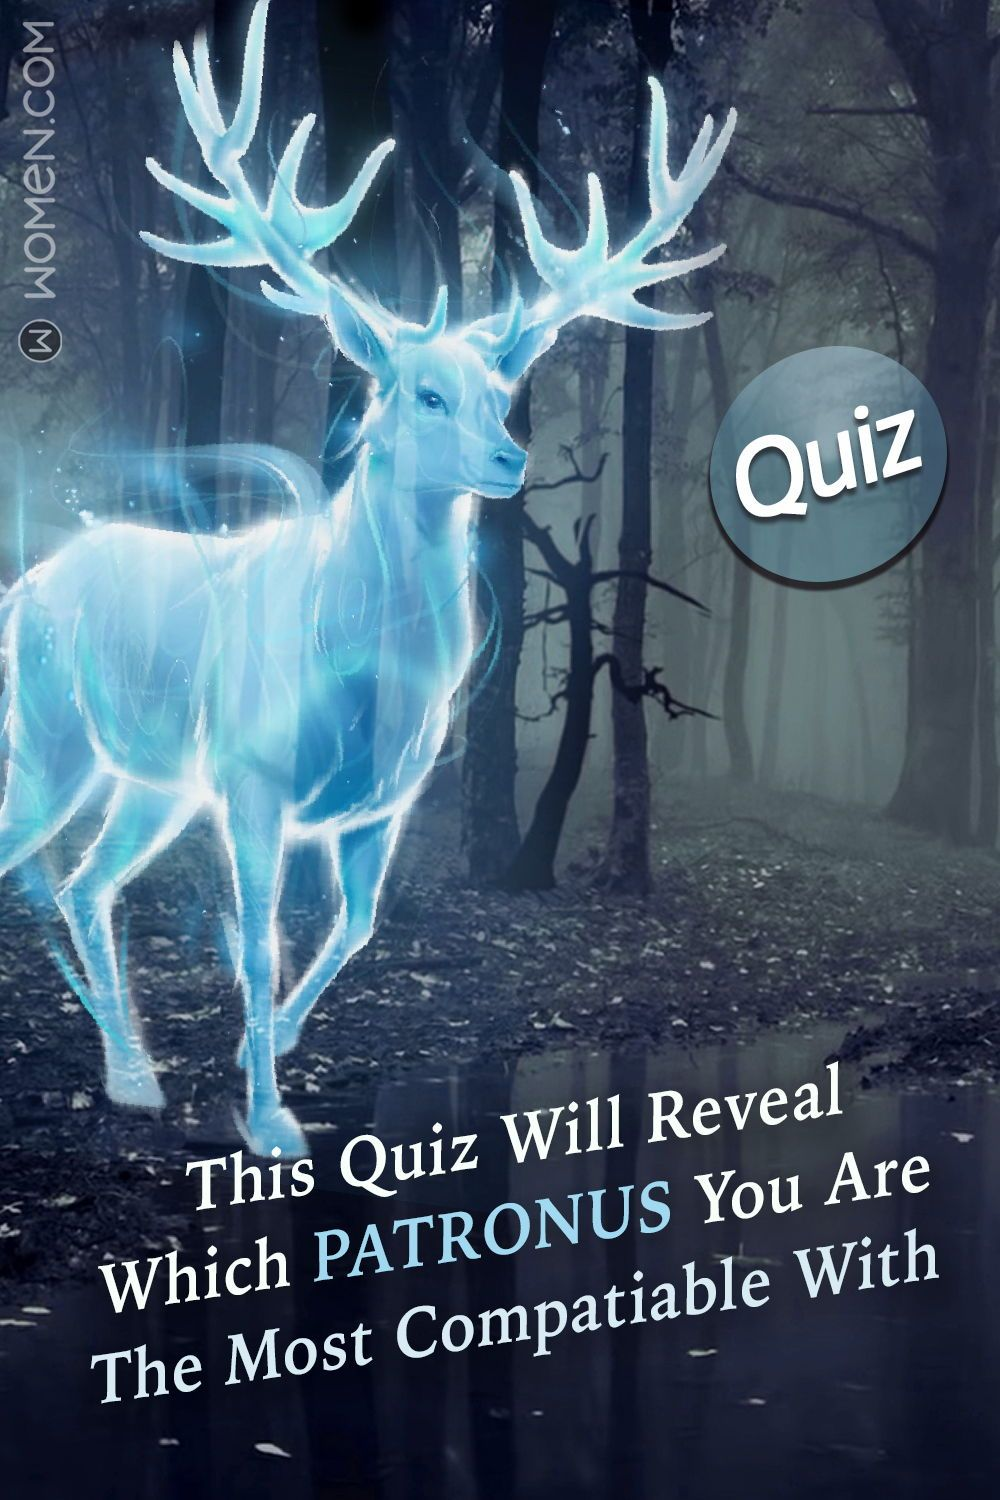 This Quiz Will Reveal Which Patronus You Are The Most Compatiable With Patronus Quiz Harry Potter Patronus